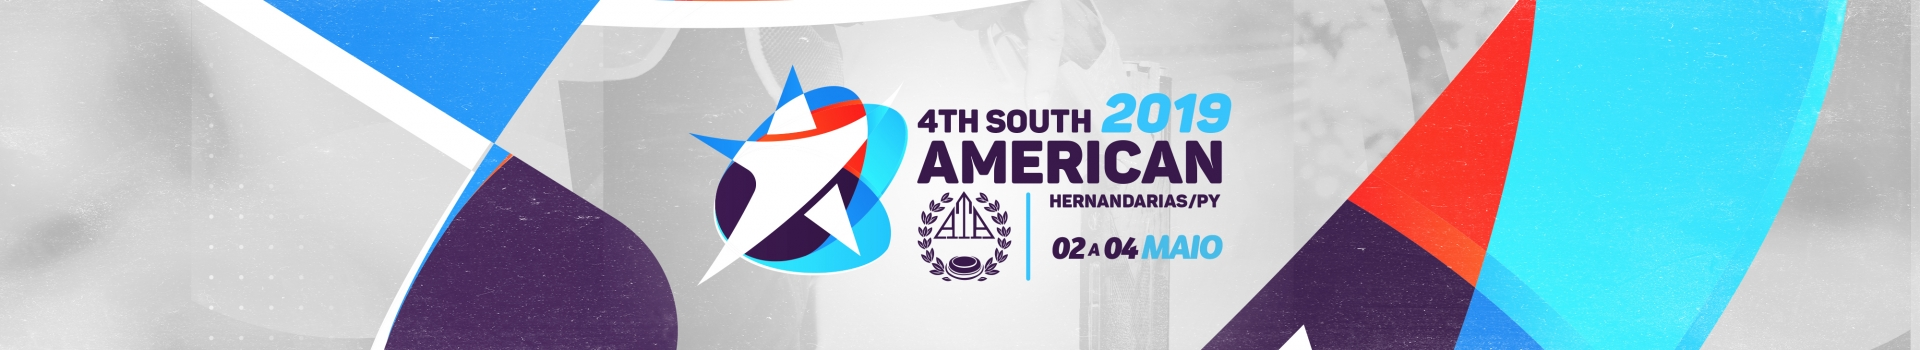 4th South American